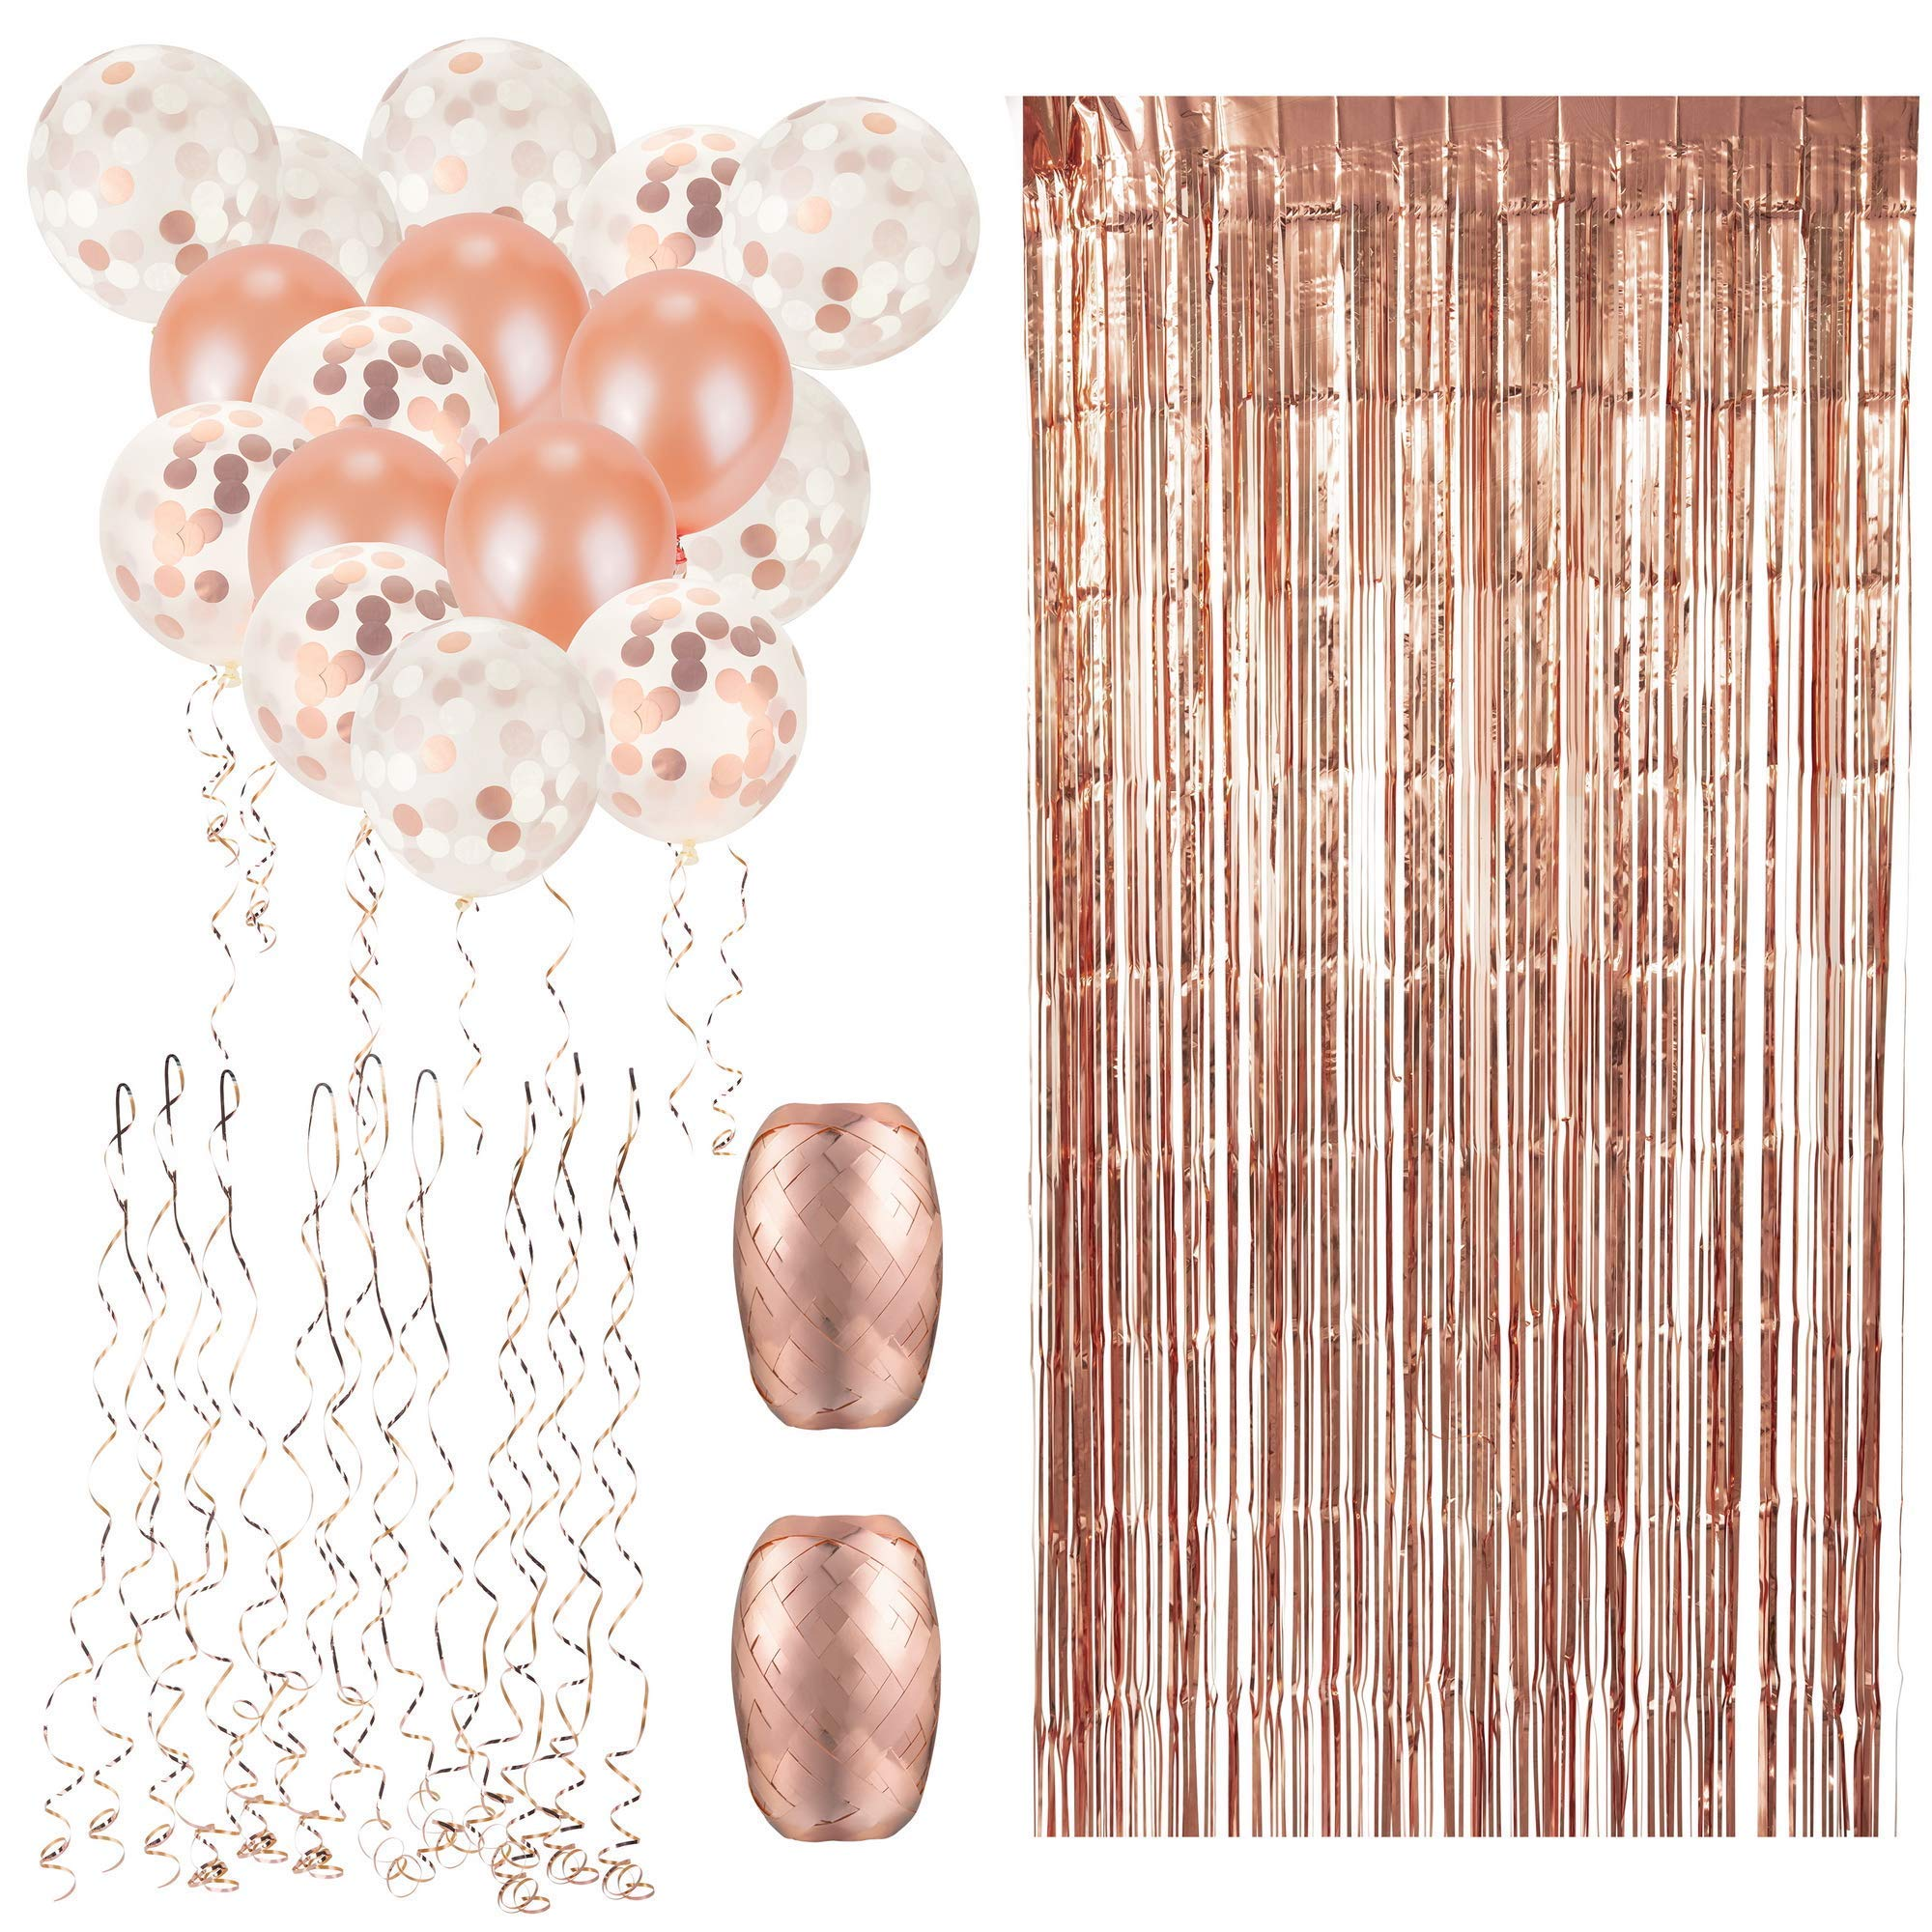 Rose Gold Balloons & Rose Gold Confetti Balloons (60-Pc. Set) Colorful Party Decorations w/Foil Curtain and Ribbons | Birthday, Anniversary, Graduation, Baby Shower, Wedding Parties